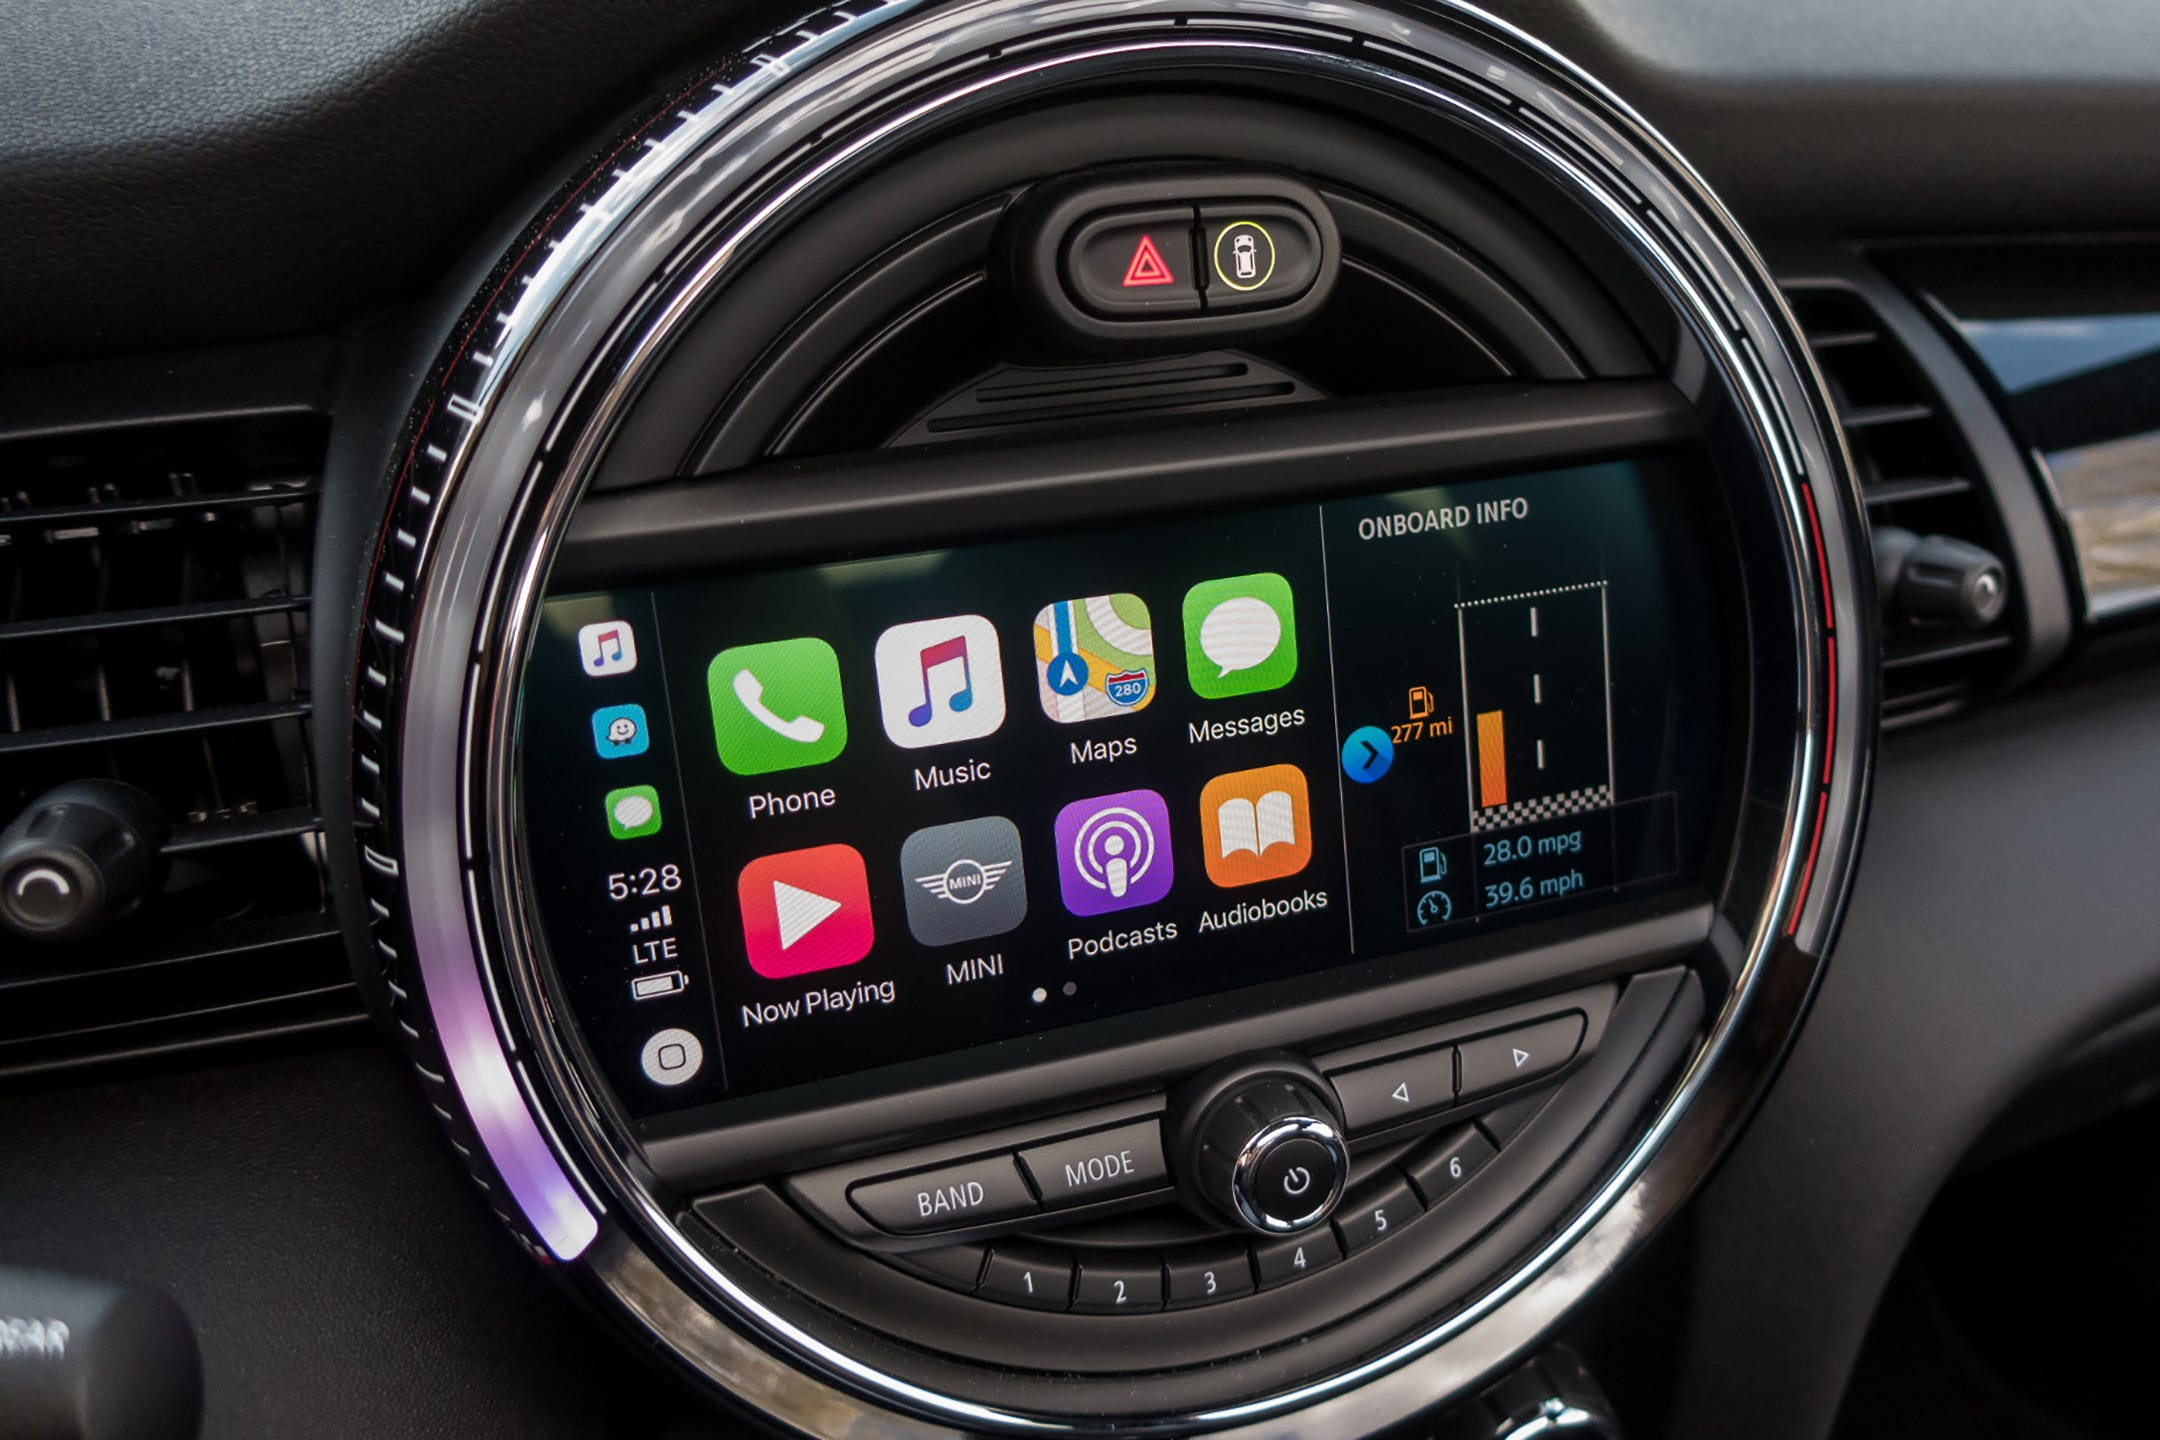 Wireless Apple CarPlay and Android Auto: Which cars have it and which ones are getting it?